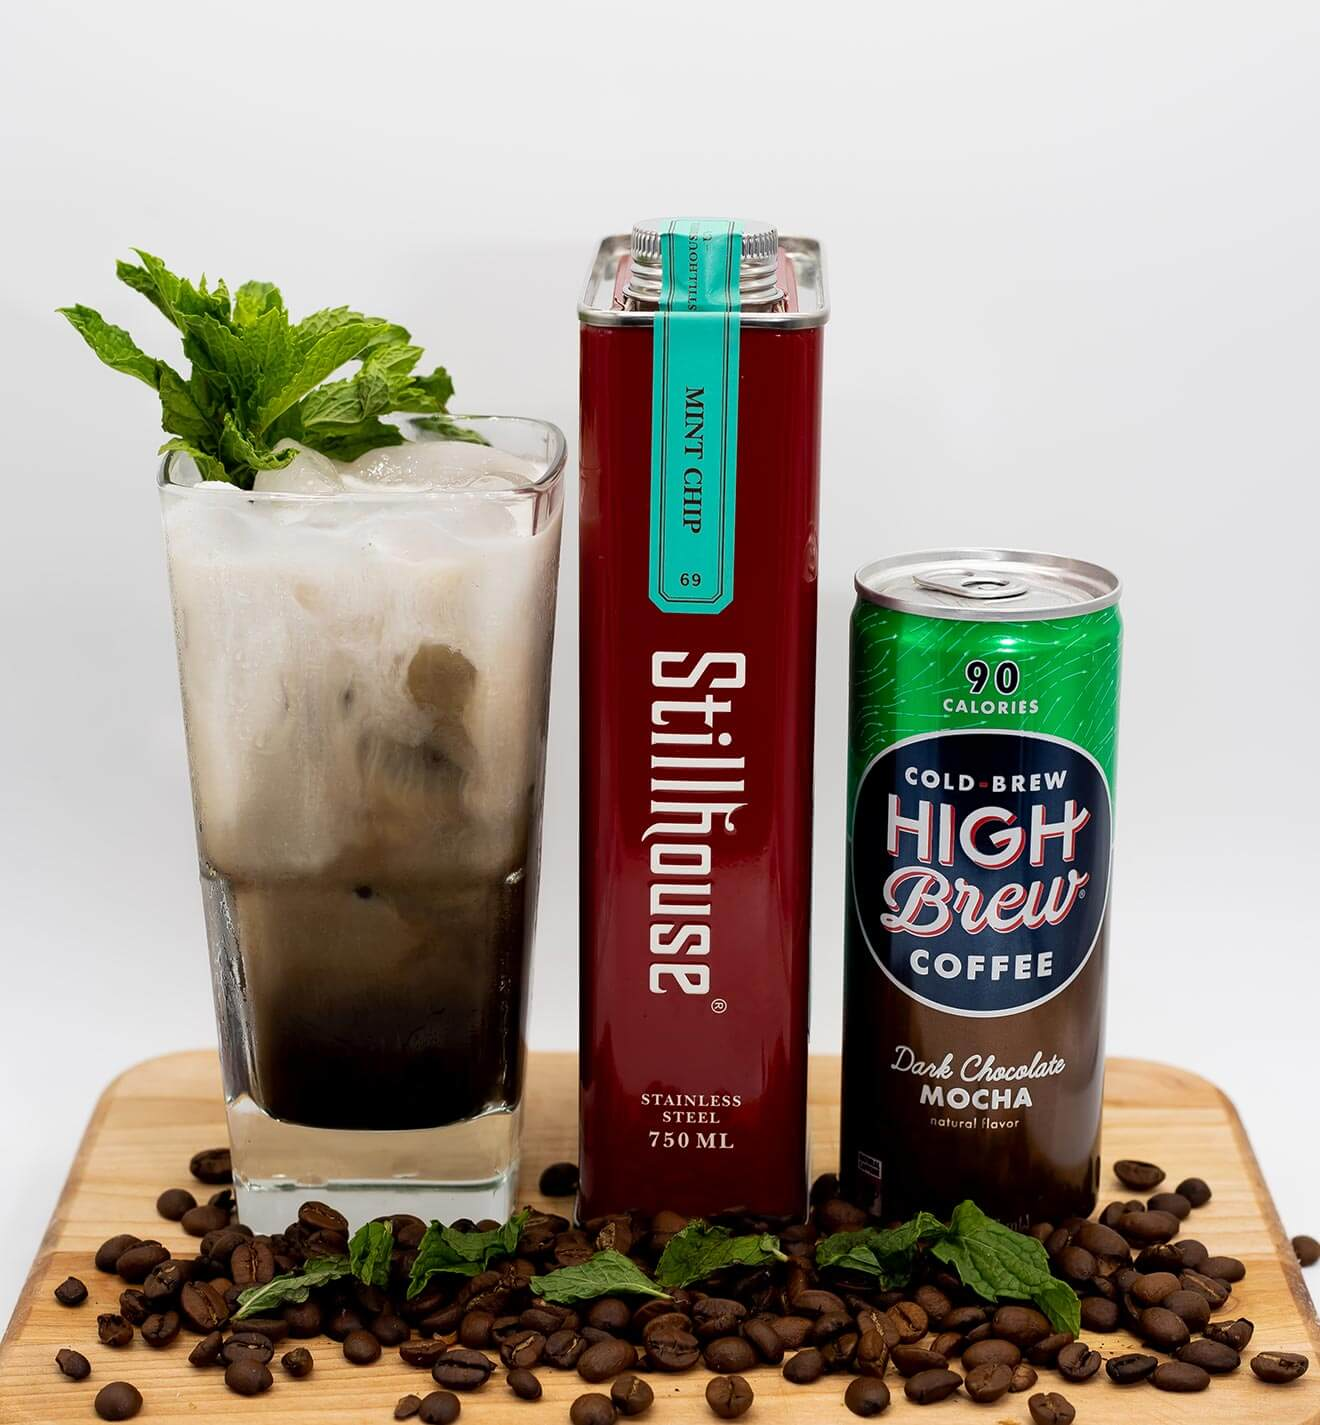 Mint Chip Mocha, cocktail can and bottle